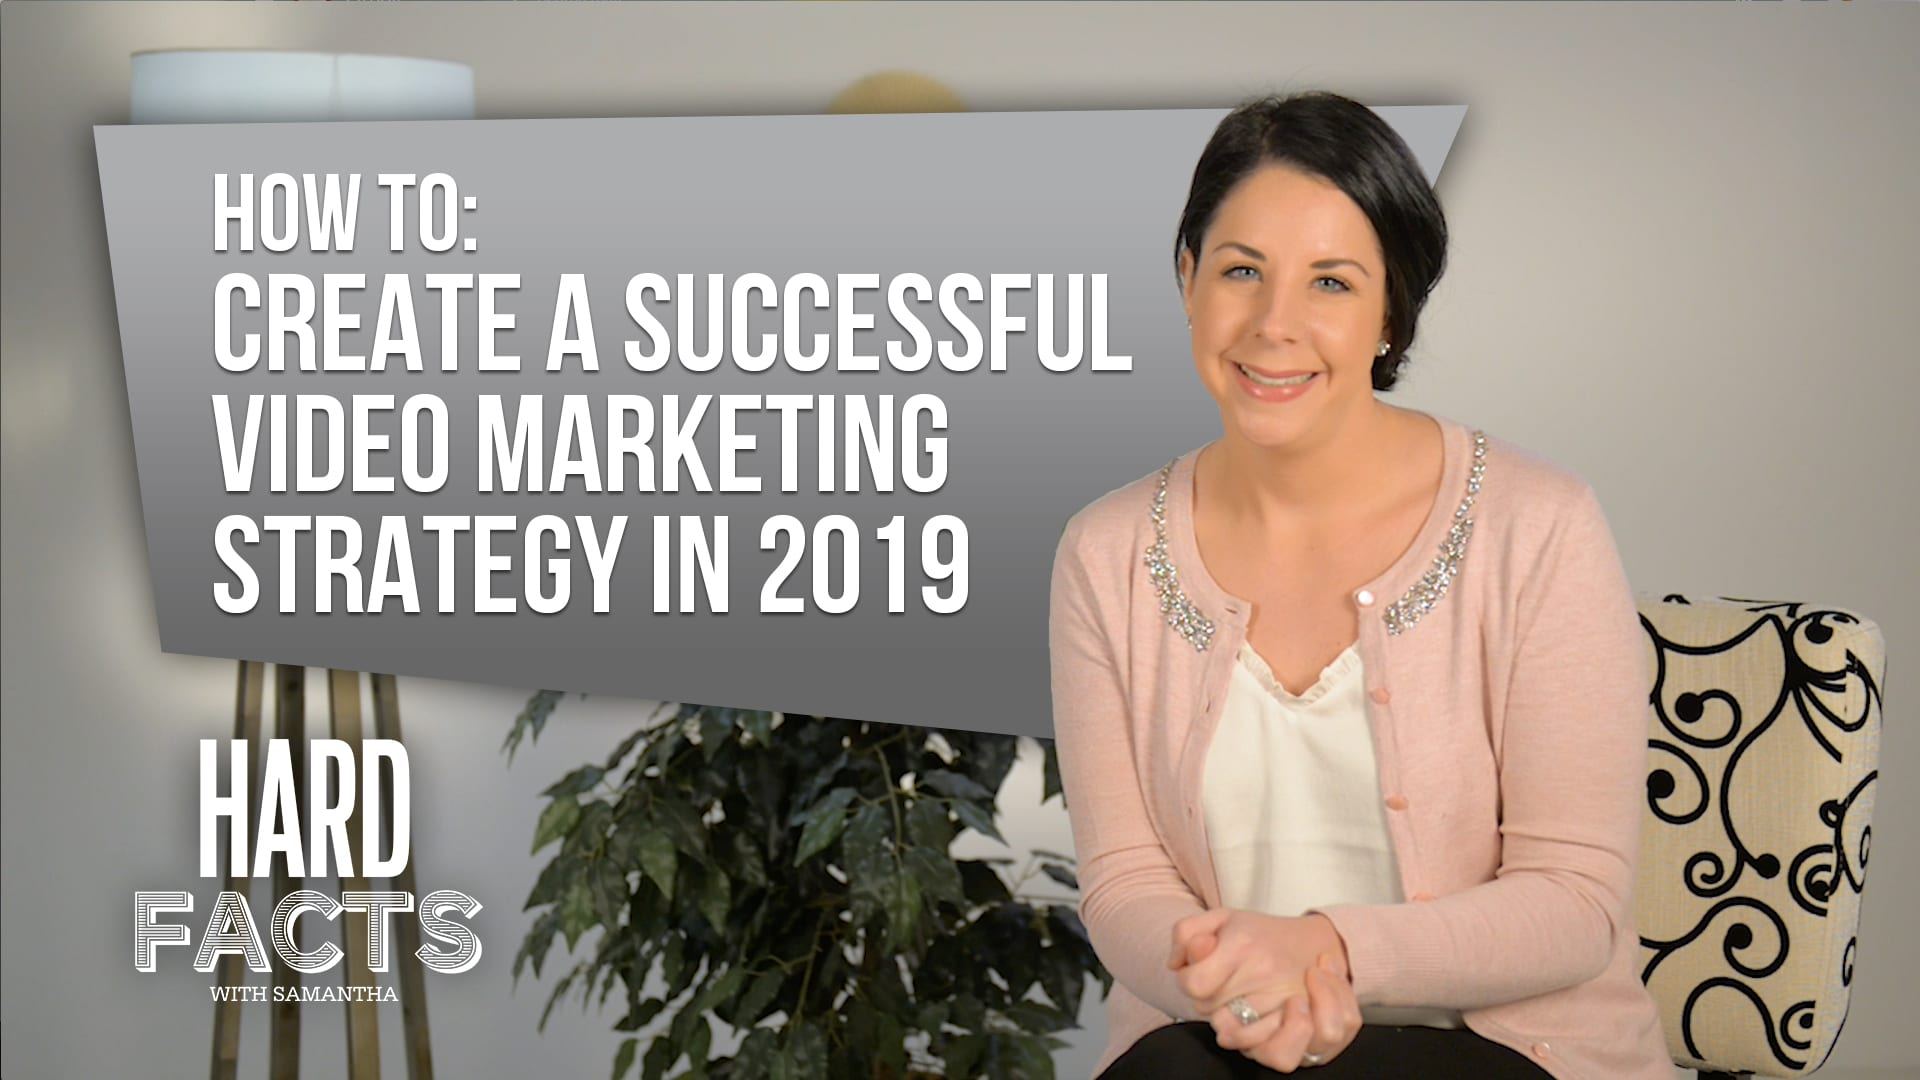 How to Create a Successful Video Marketing Strategy in 2019